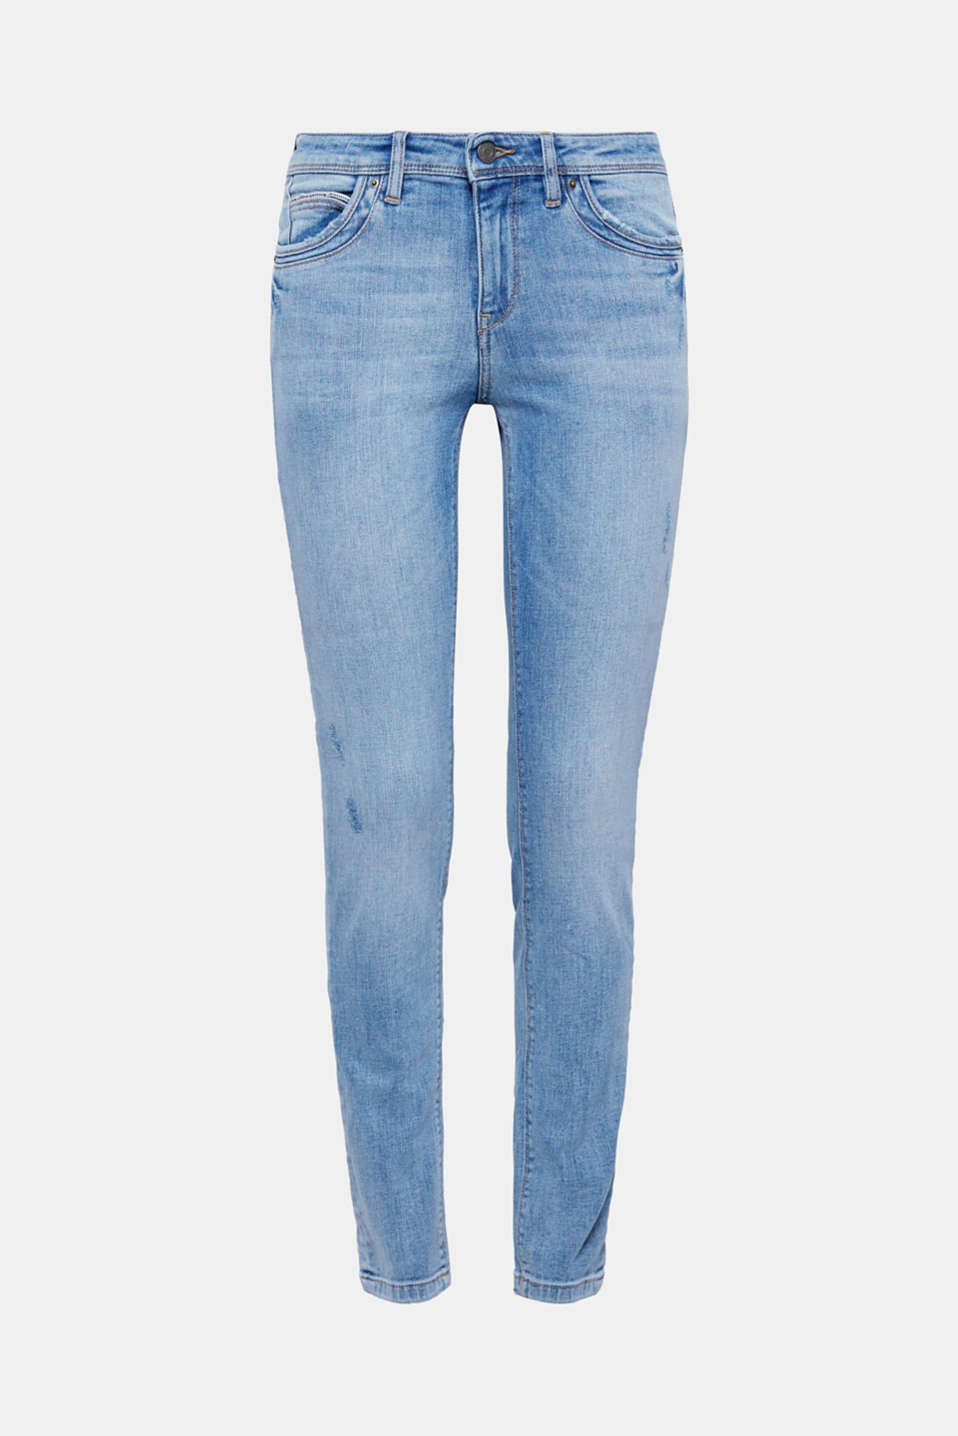 Vintage effects and embellished pockets give these stretch jeans in high-quality organic cotton their look!